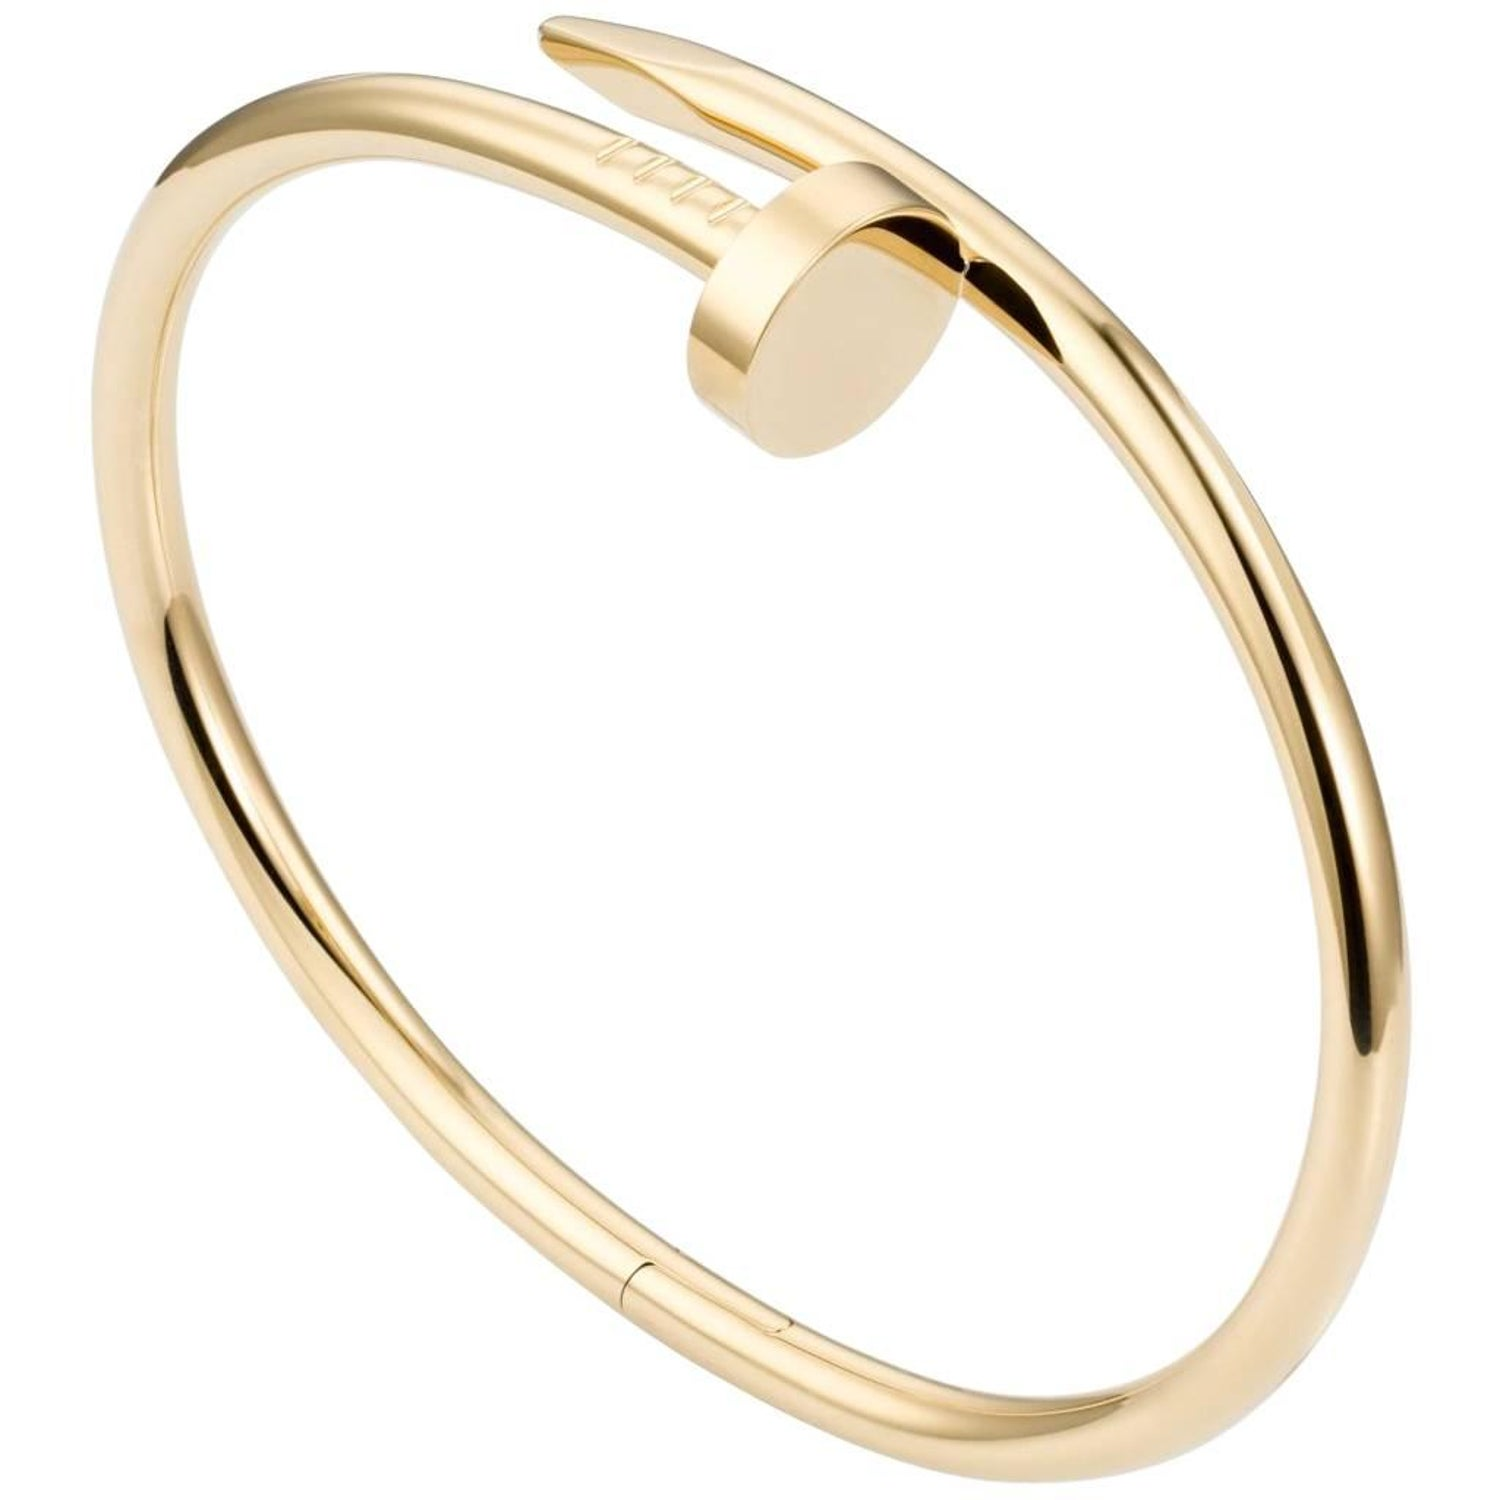 metallic gallery camuto lyst head normal vince in bangle set gold goldtone nail bracelet product tone jewelry